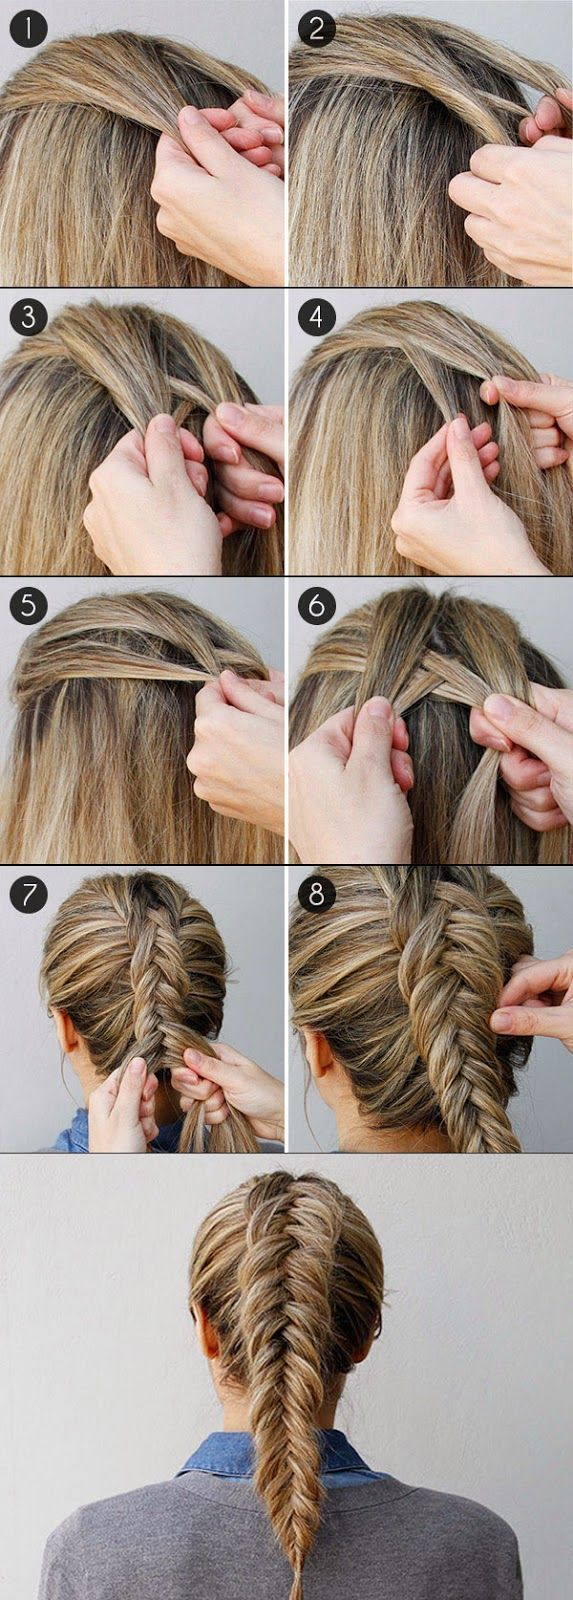 How To Fishtail Braid Your Own Hair Hairstyle Ideas Calgary